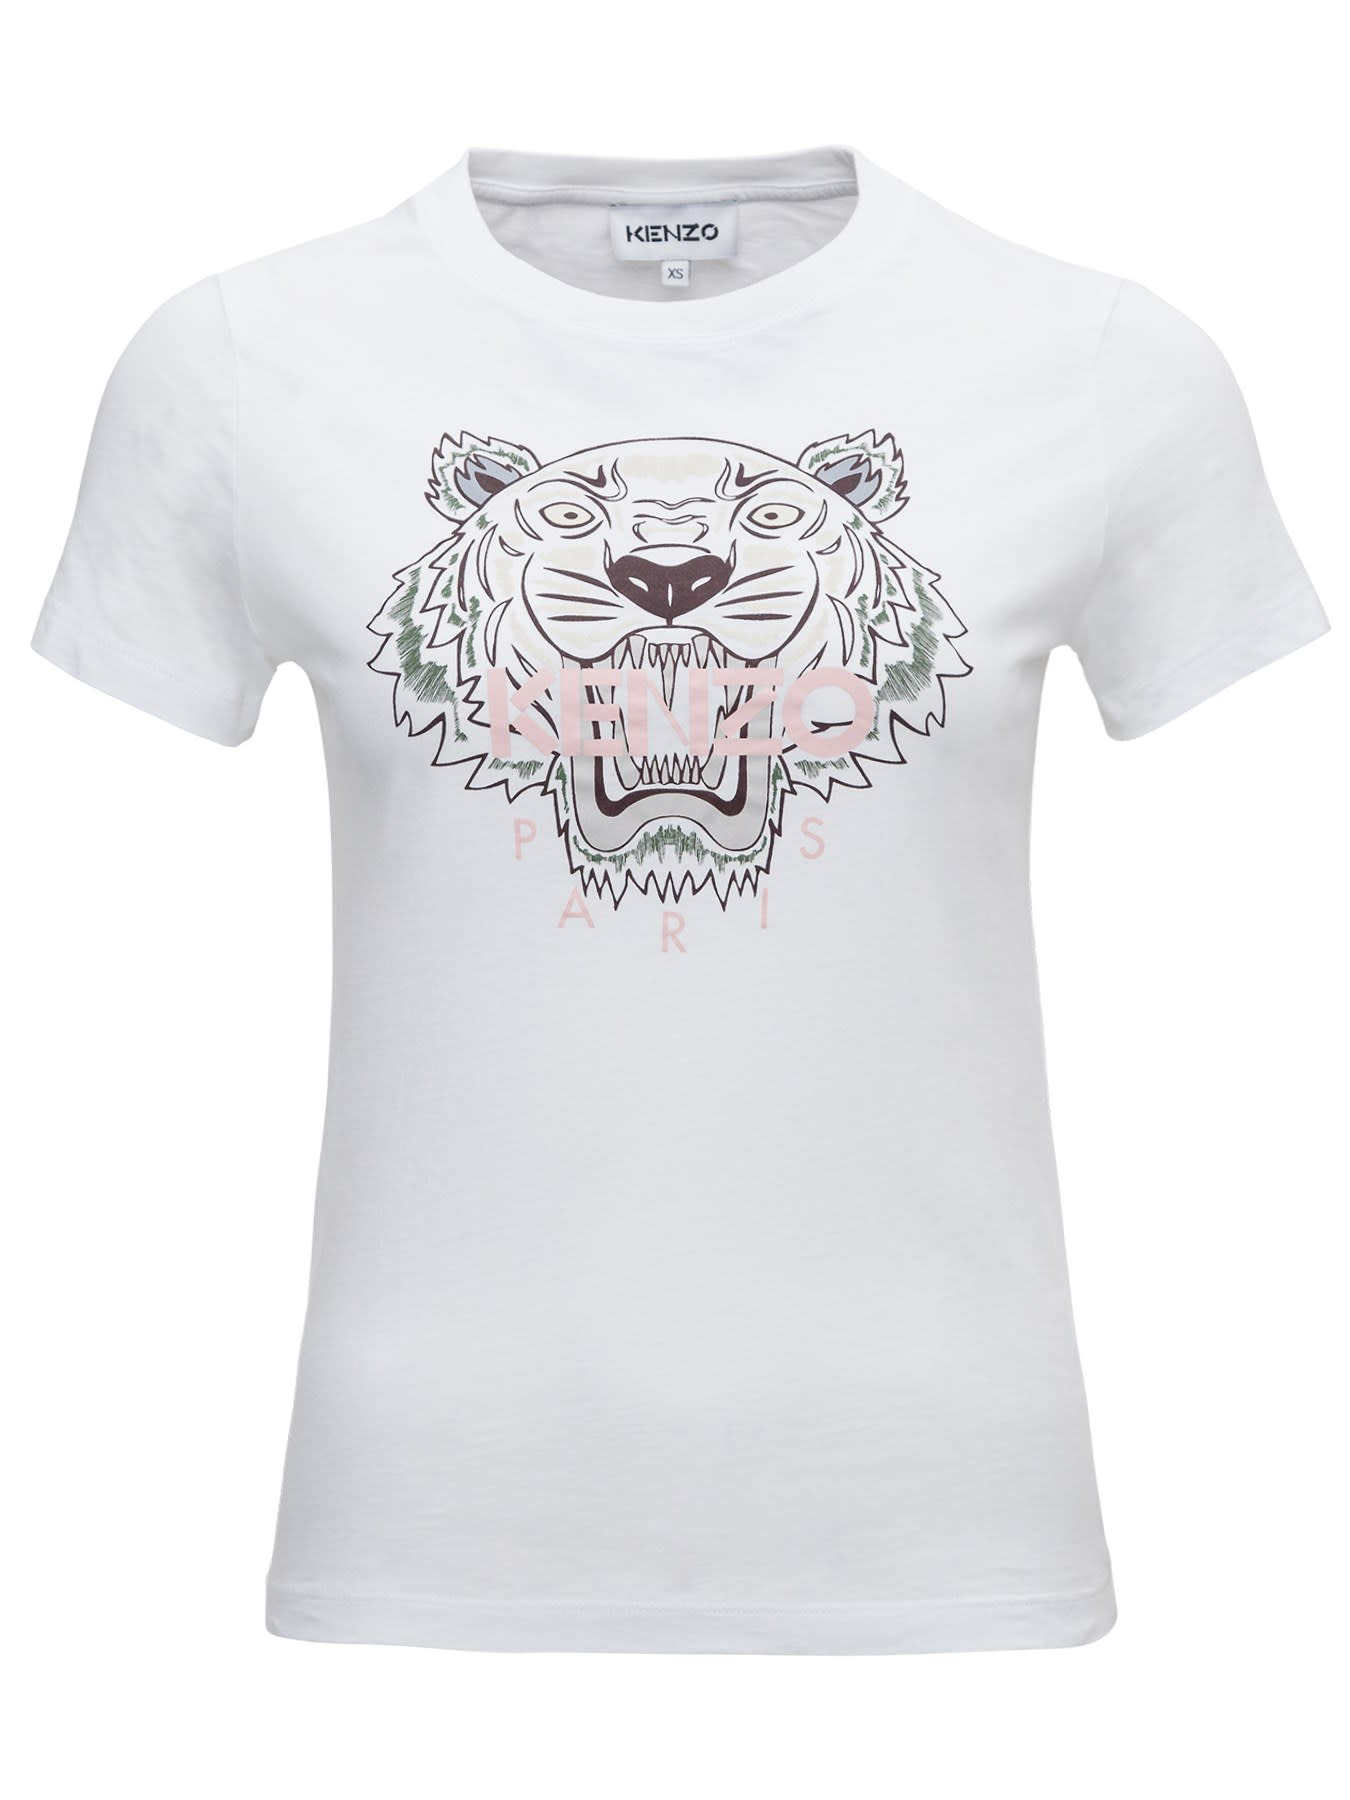 Kenzo Tiger Tee In White